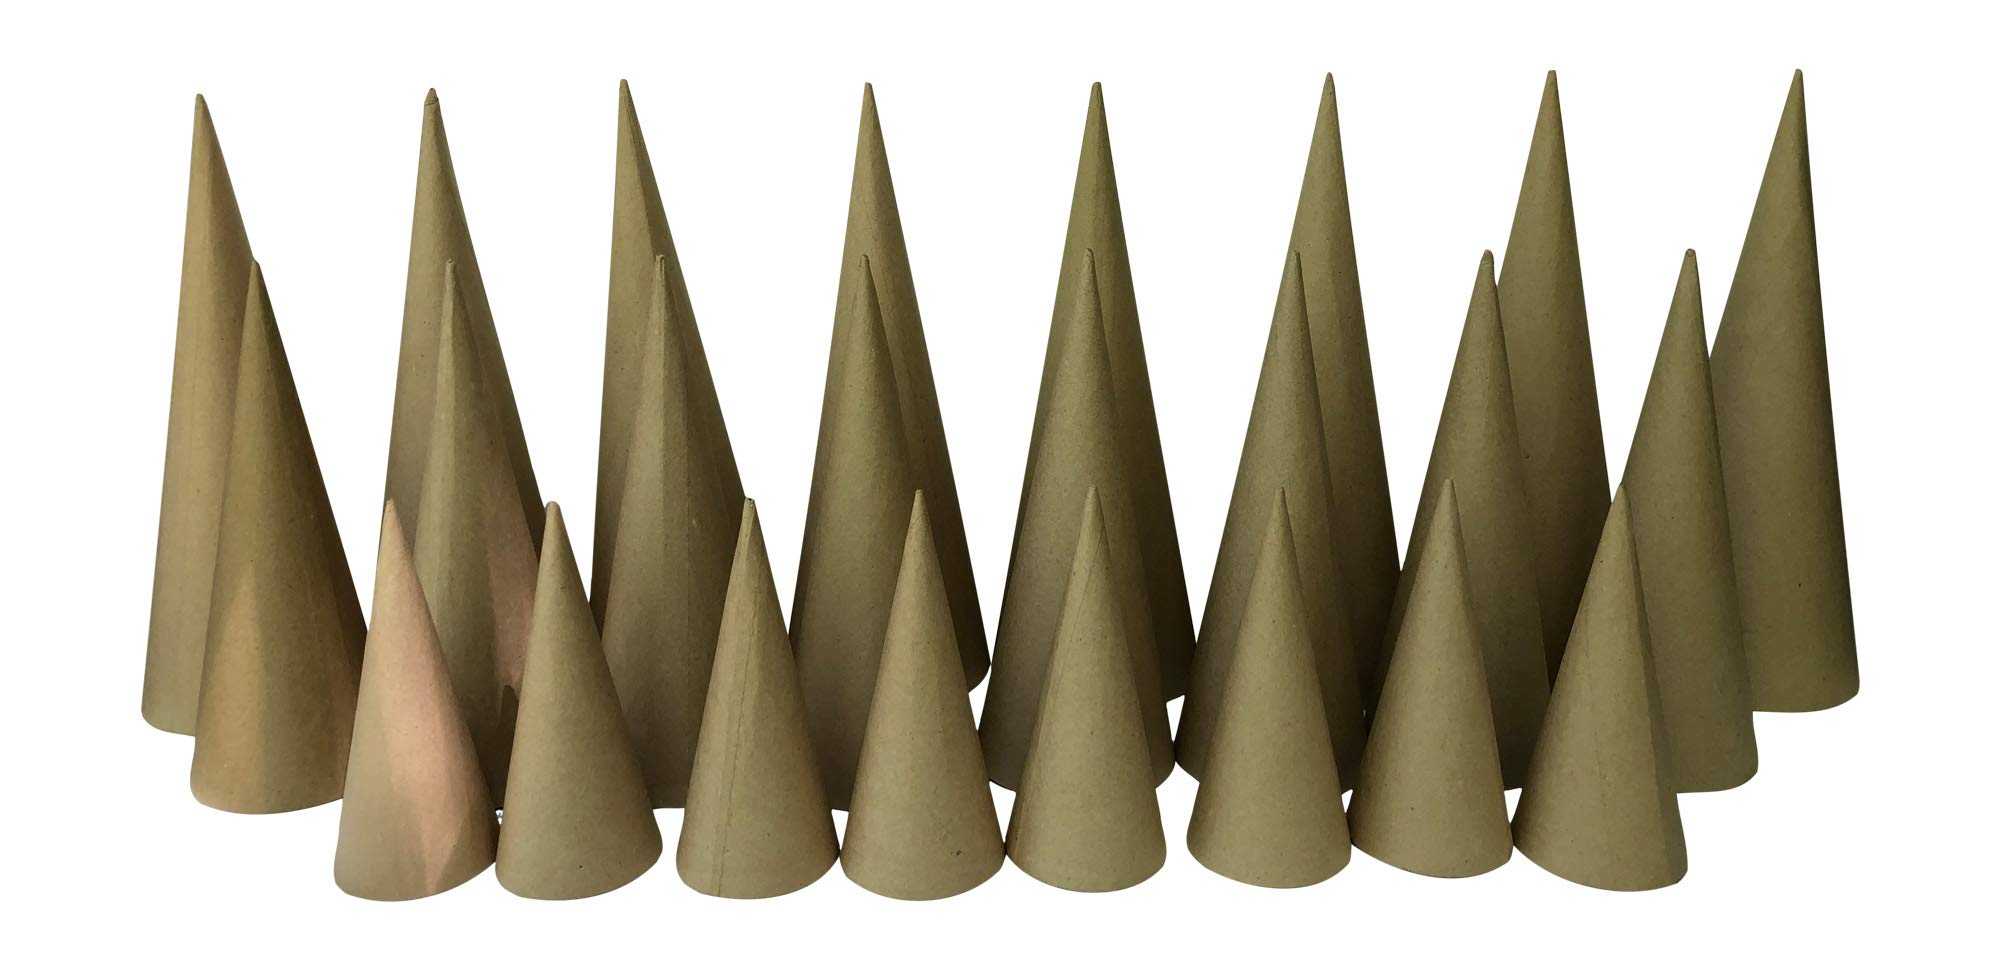 Paper Mache Craft Cones Variety Pack 3 Sizes- 13.75 x 5, 10.63 x 4, 7 x 3 Inches- Set of 24 by Generic